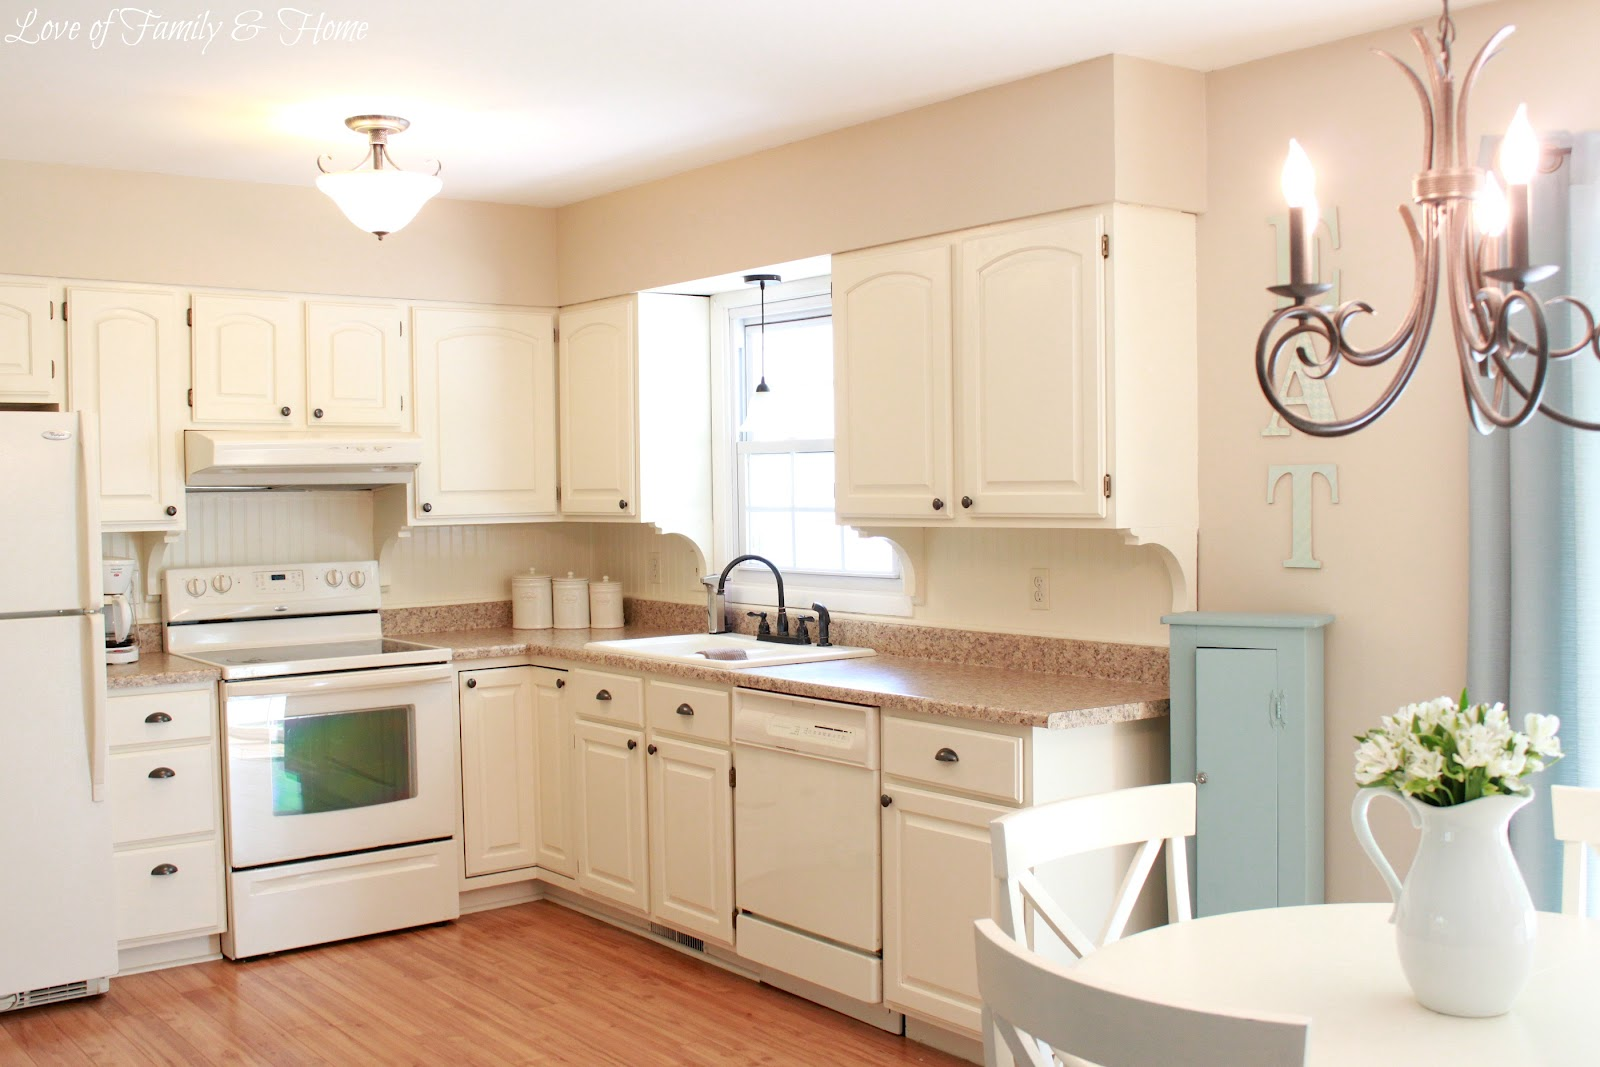 White Beadboard Kitchen Cabinets Beadboard Backsplash Corbel Love And A Few Other Kitchen